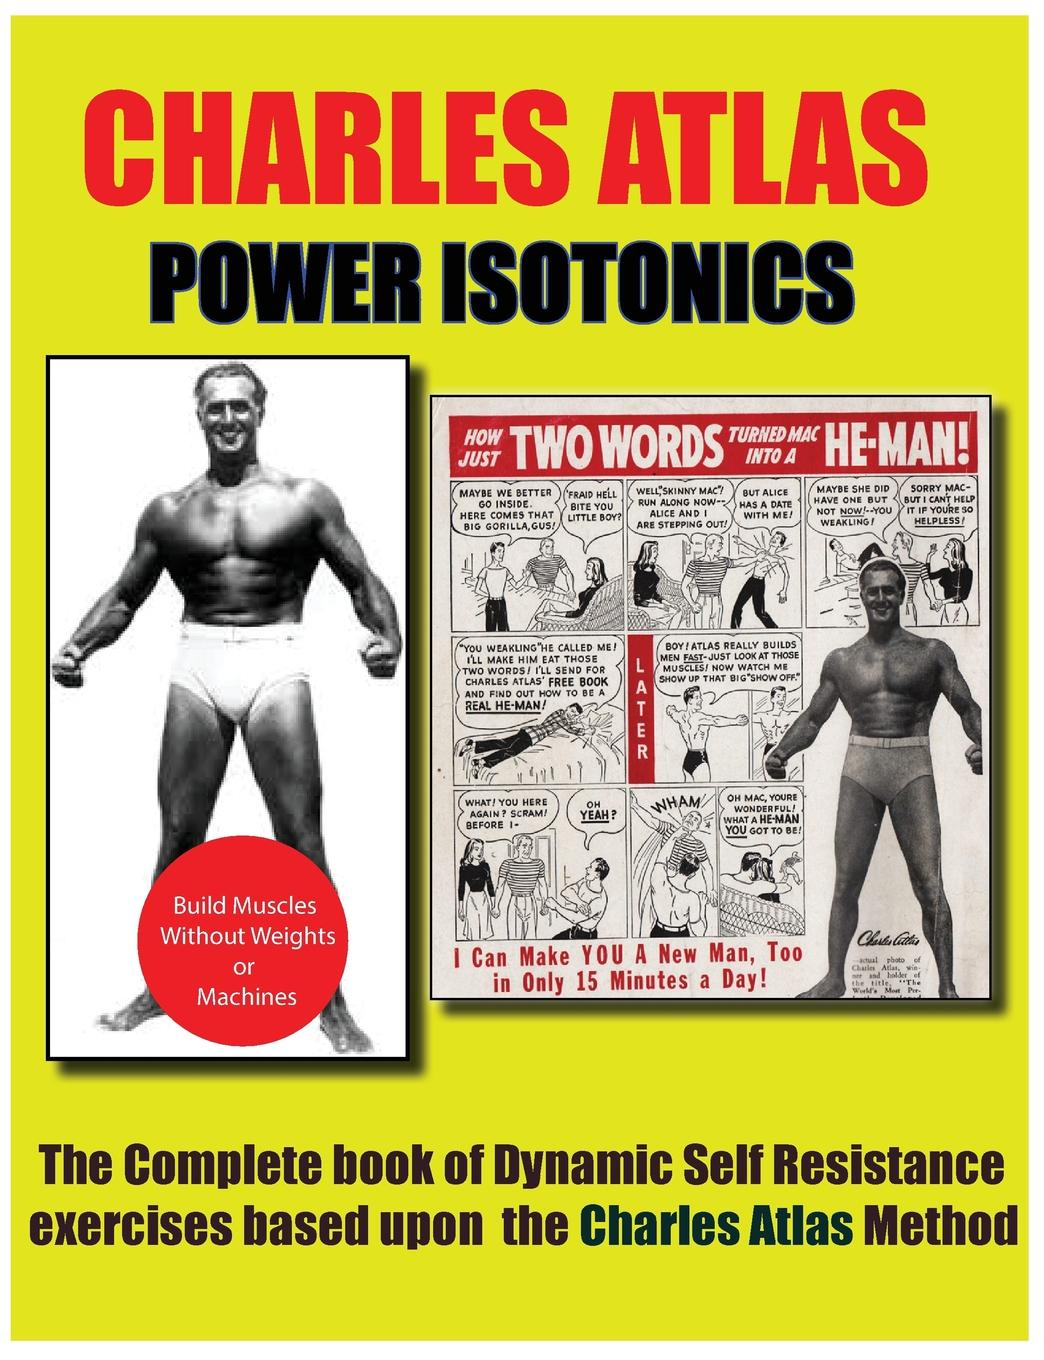 Charles Atlas Power Isotonics Bodybuilding course my first world atlas